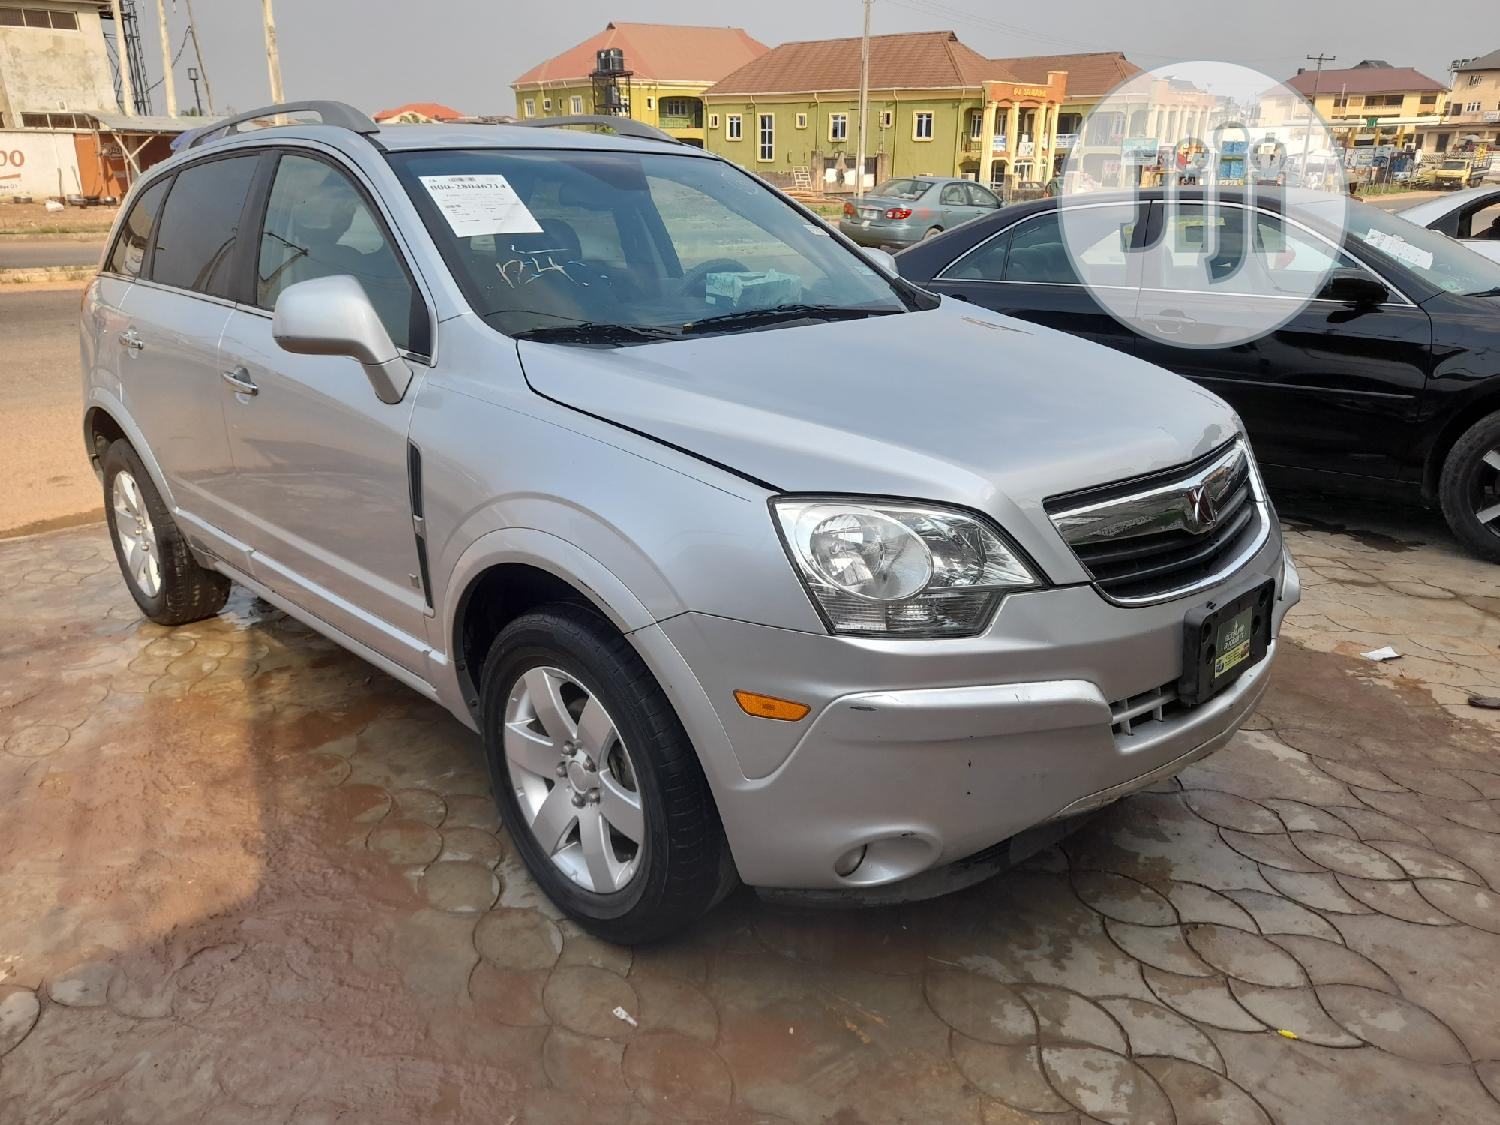 Archive: Saturn Vue 2009 AWD V6 XE Silver